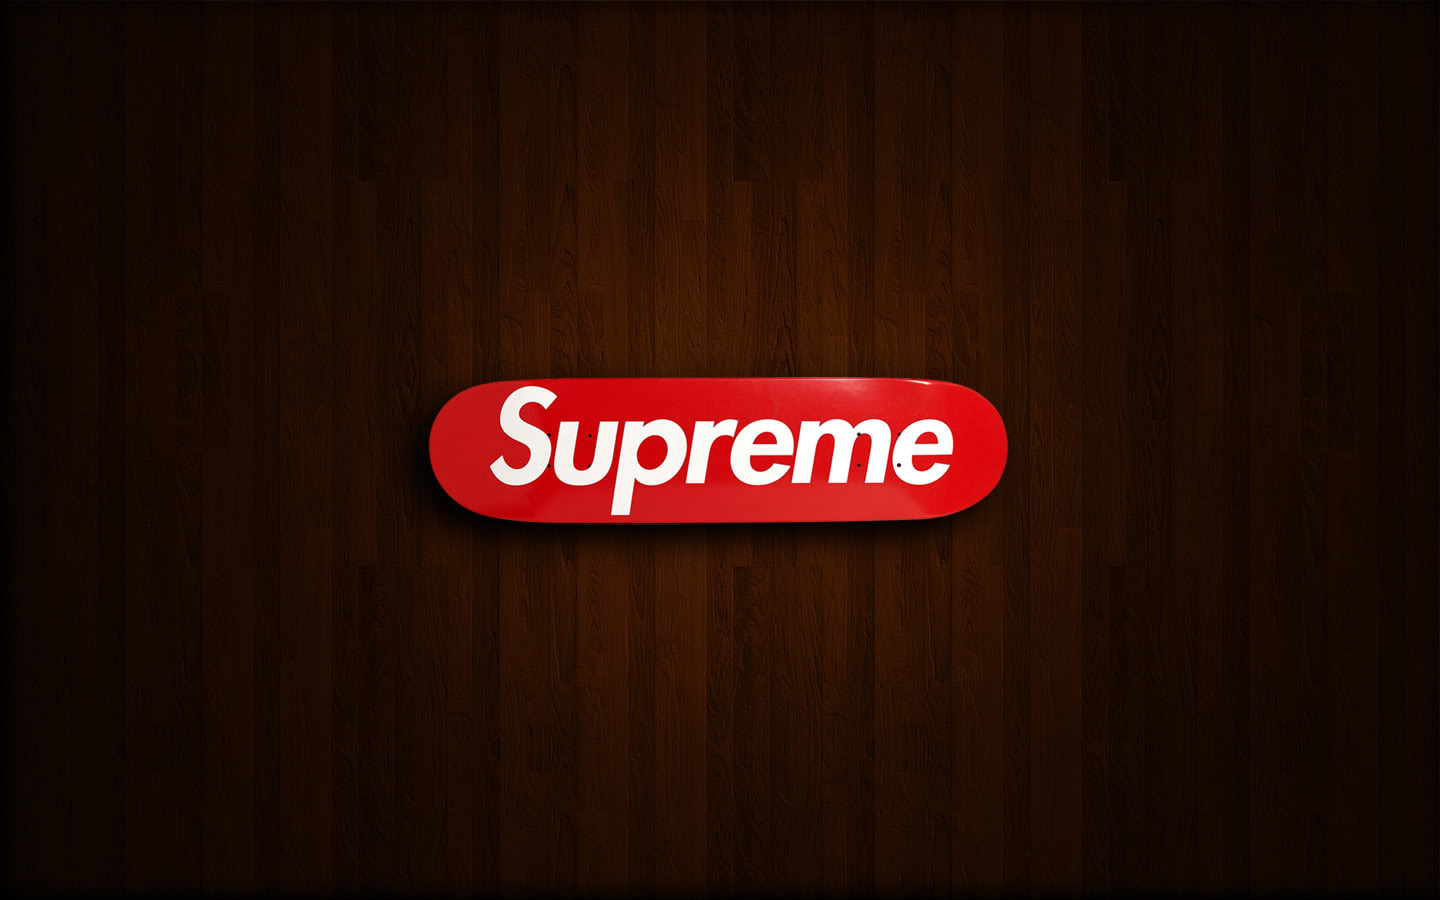 Supreme Wallpaper 1440x900